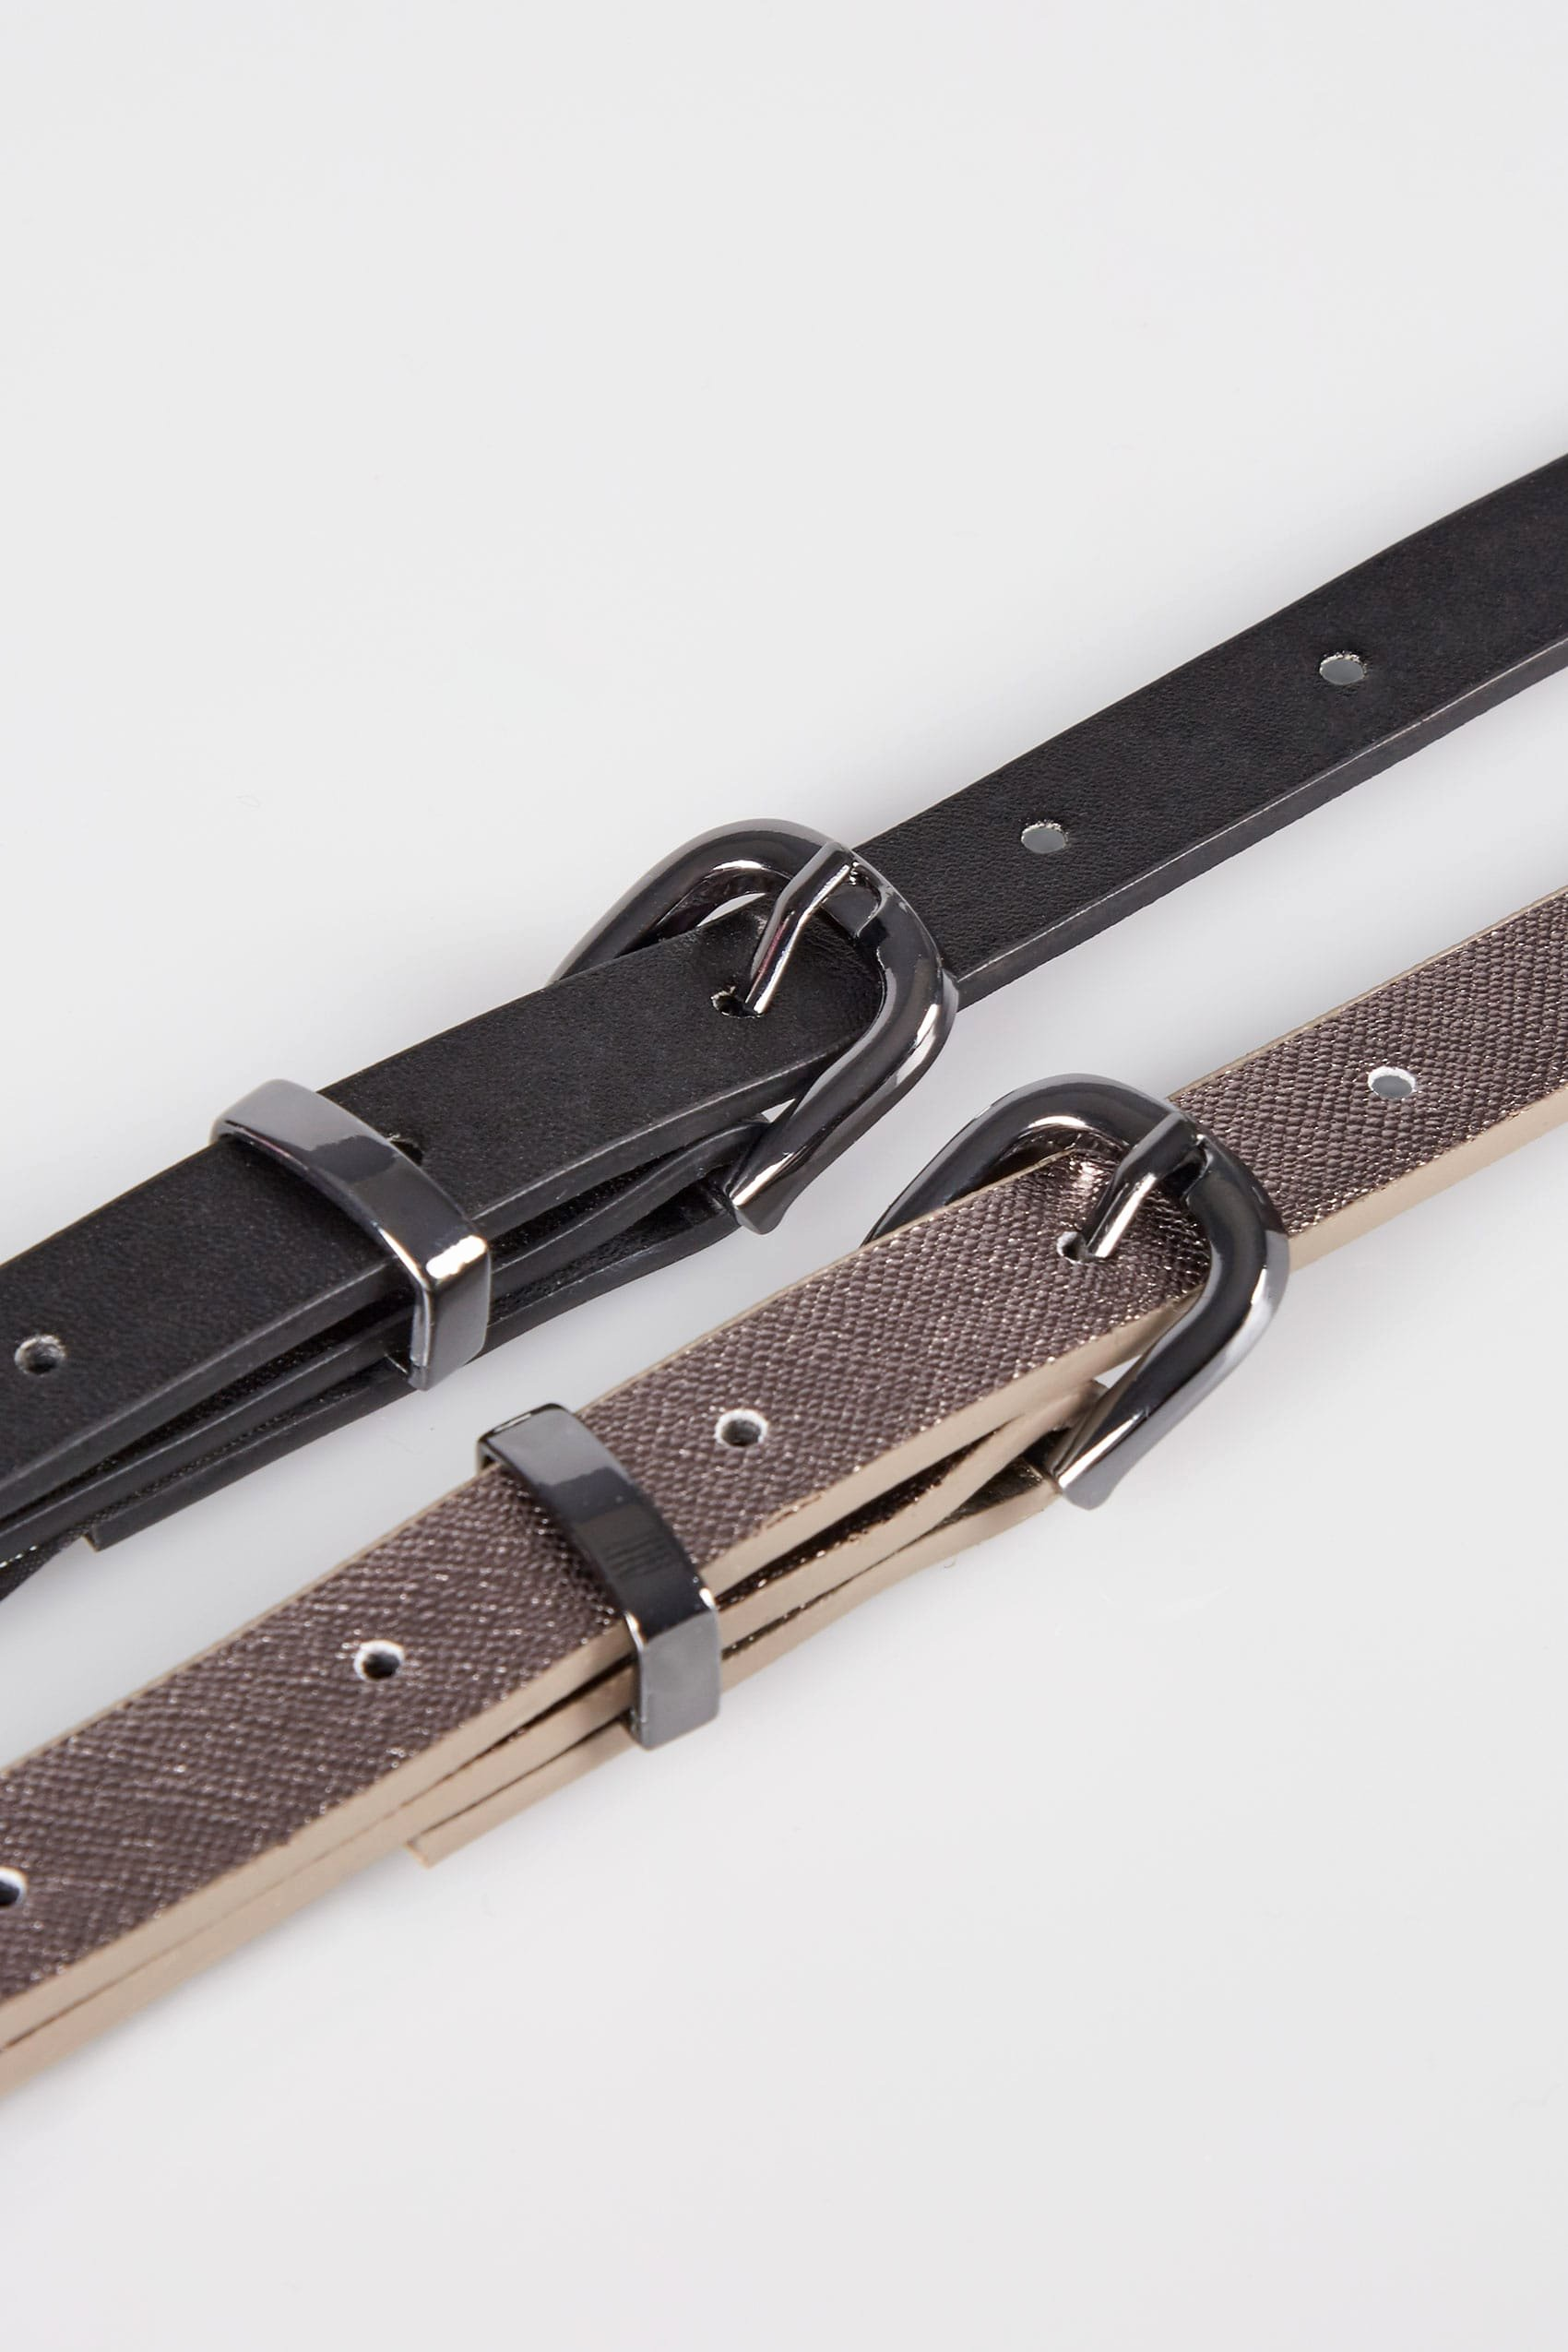 No Return Policy Template Awesome 2 Pack Black & Metallic Skinny Belts Plus Size 16 to 32